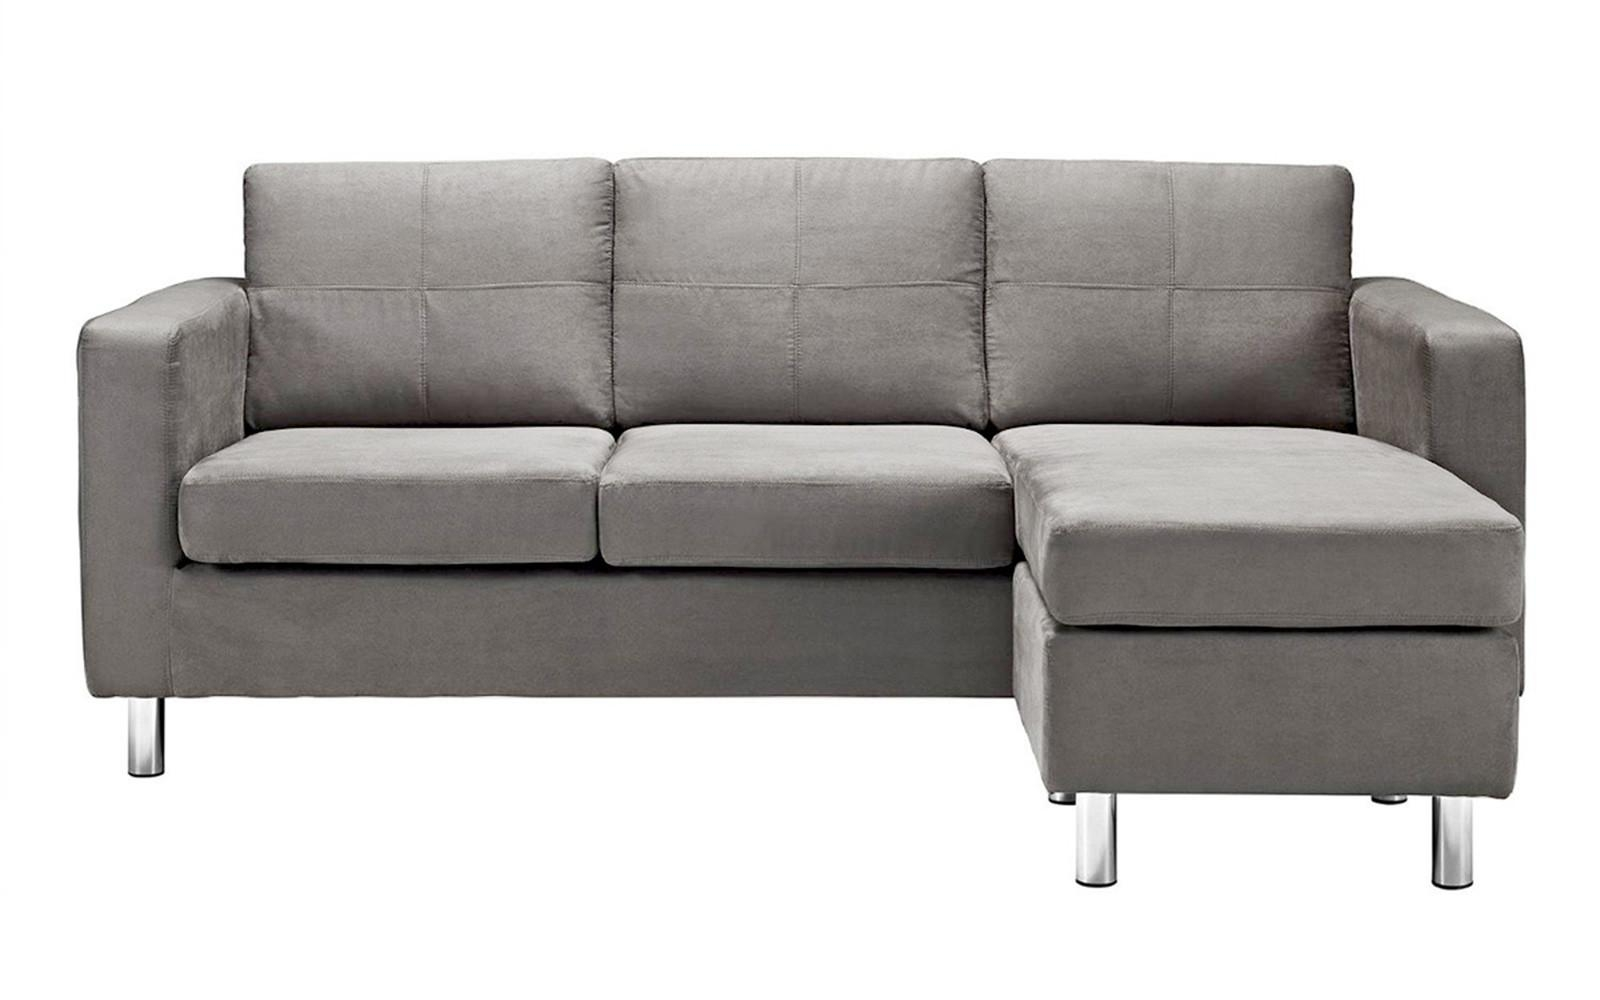 Modern Reversible Small Space Configurable Microfiber Sectional Intended For Modern Small Sectional Sofas (Image 10 of 20)